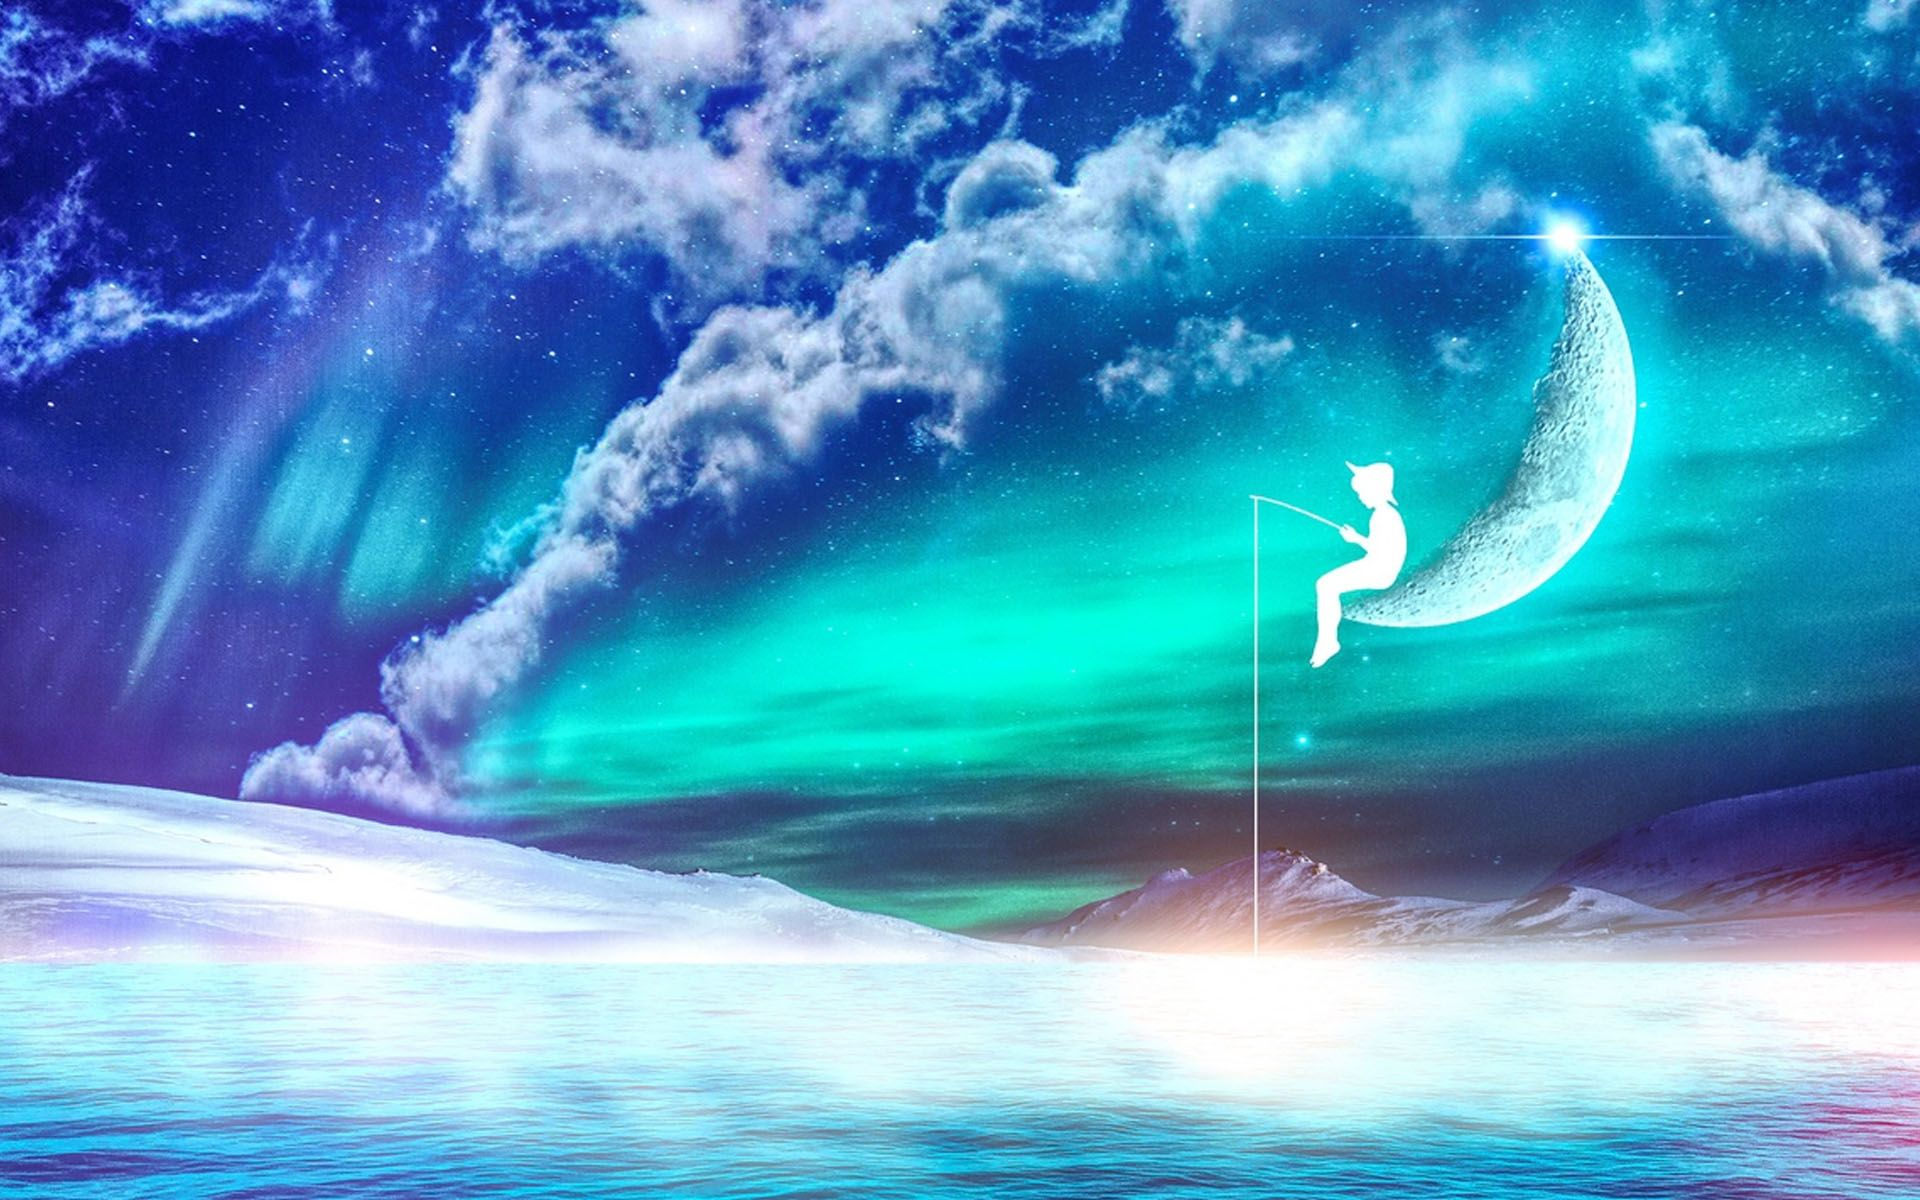 Fishing Fantasy Hd Wallpaper Legal Psychedelics Lucid Dreaming Lucid